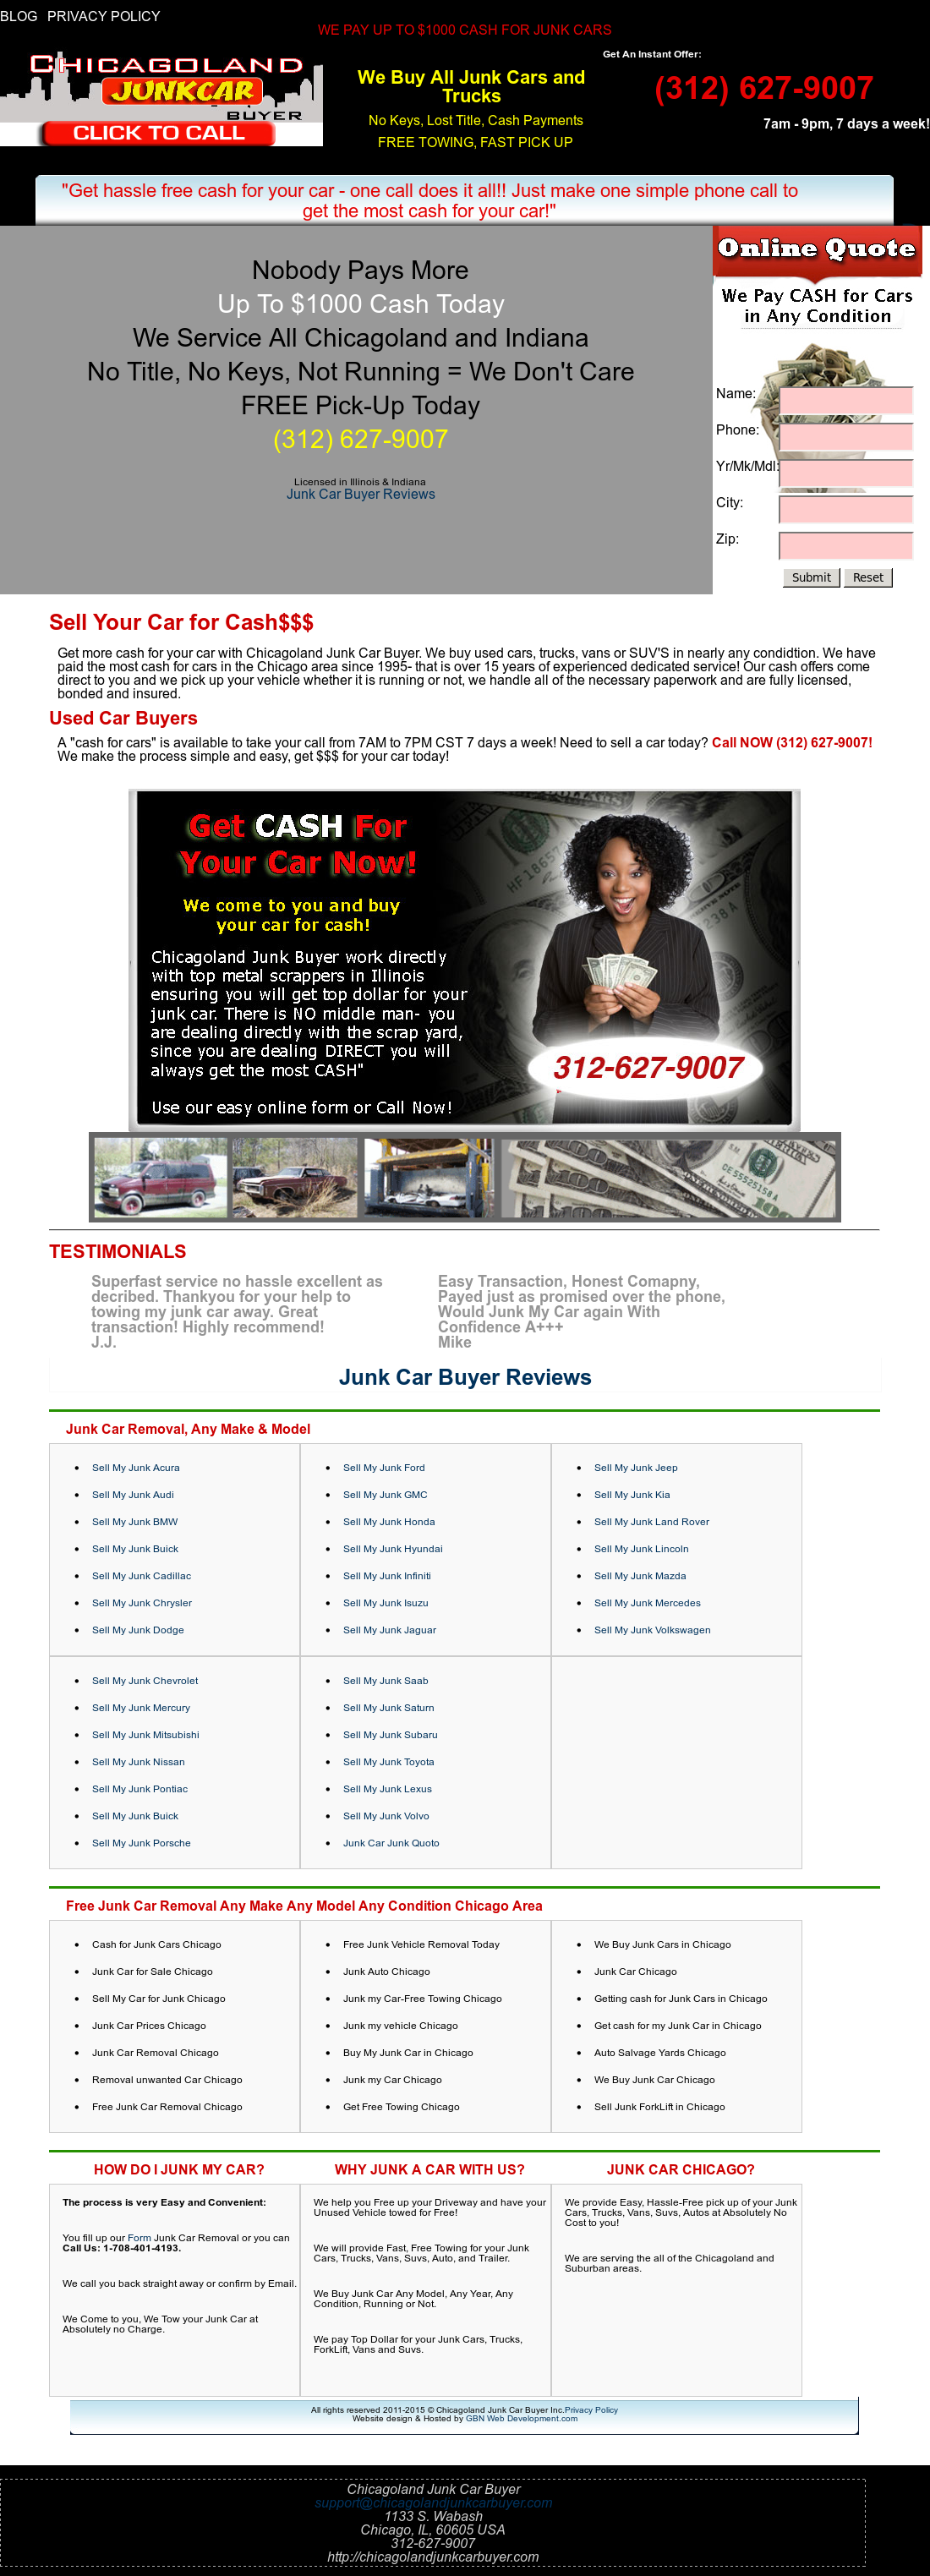 Chicagoland Junk Car Buyer Competitors, Revenue and Employees ...